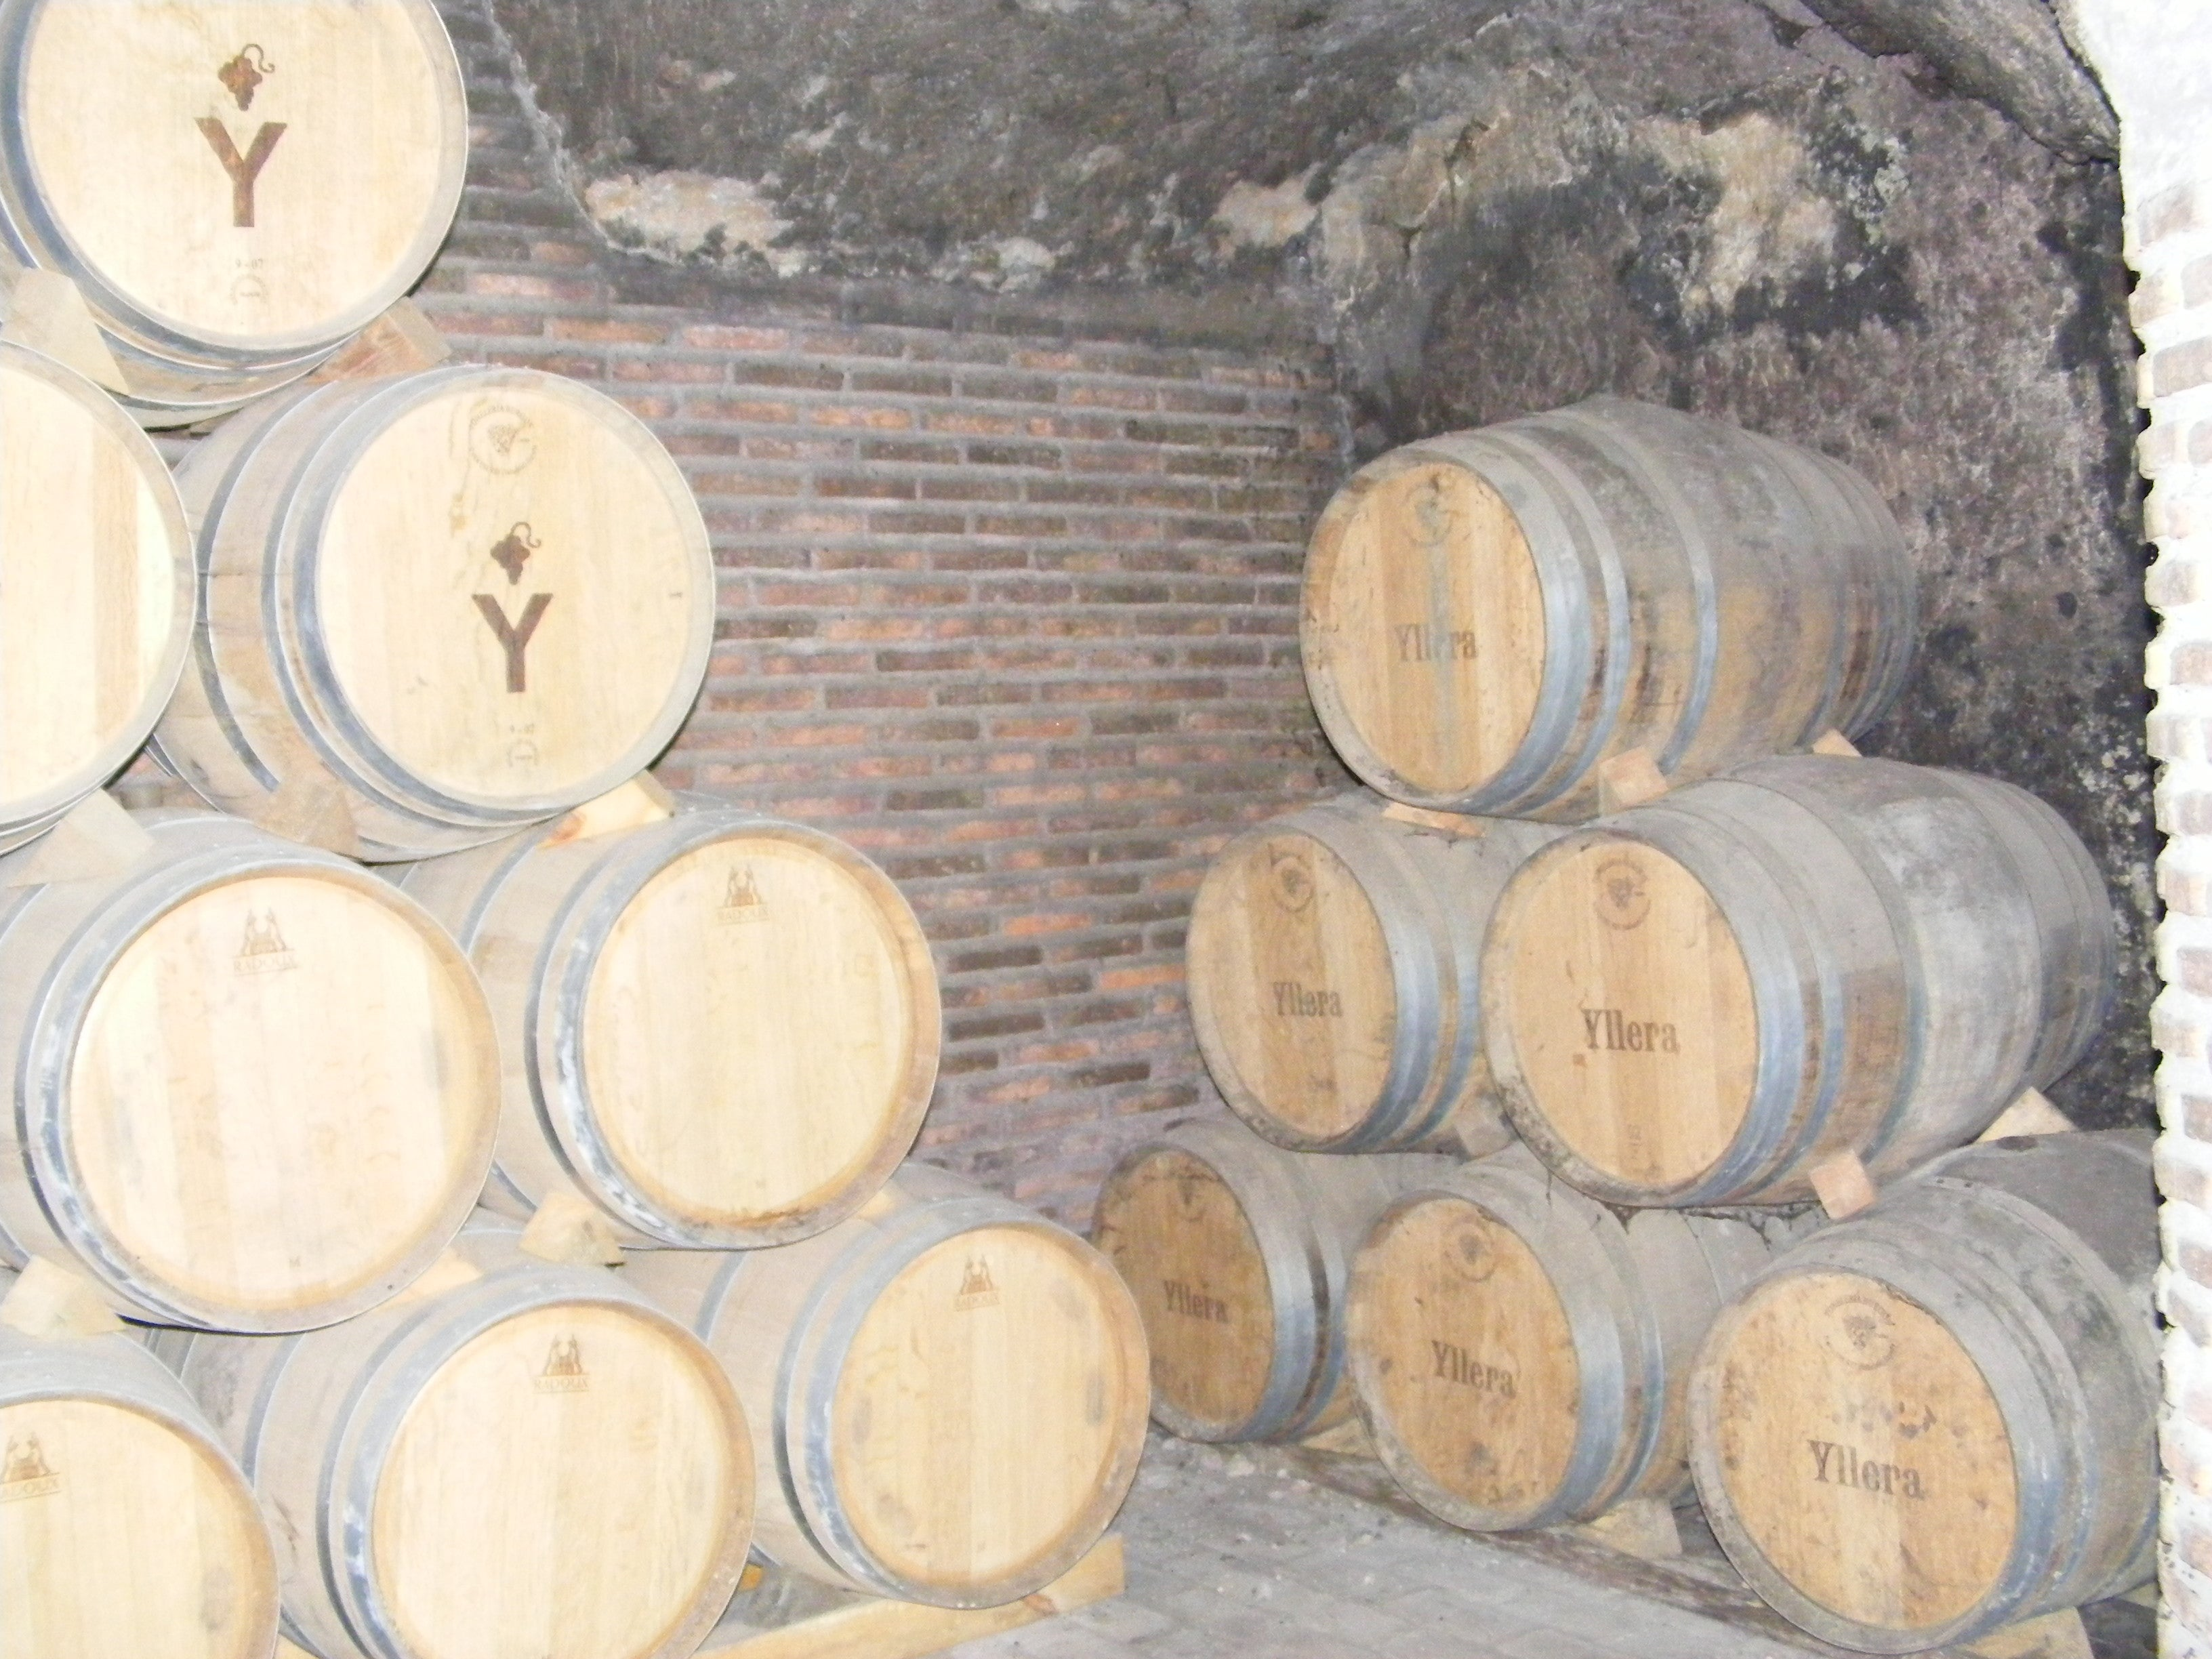 Bodegas Yllera Group